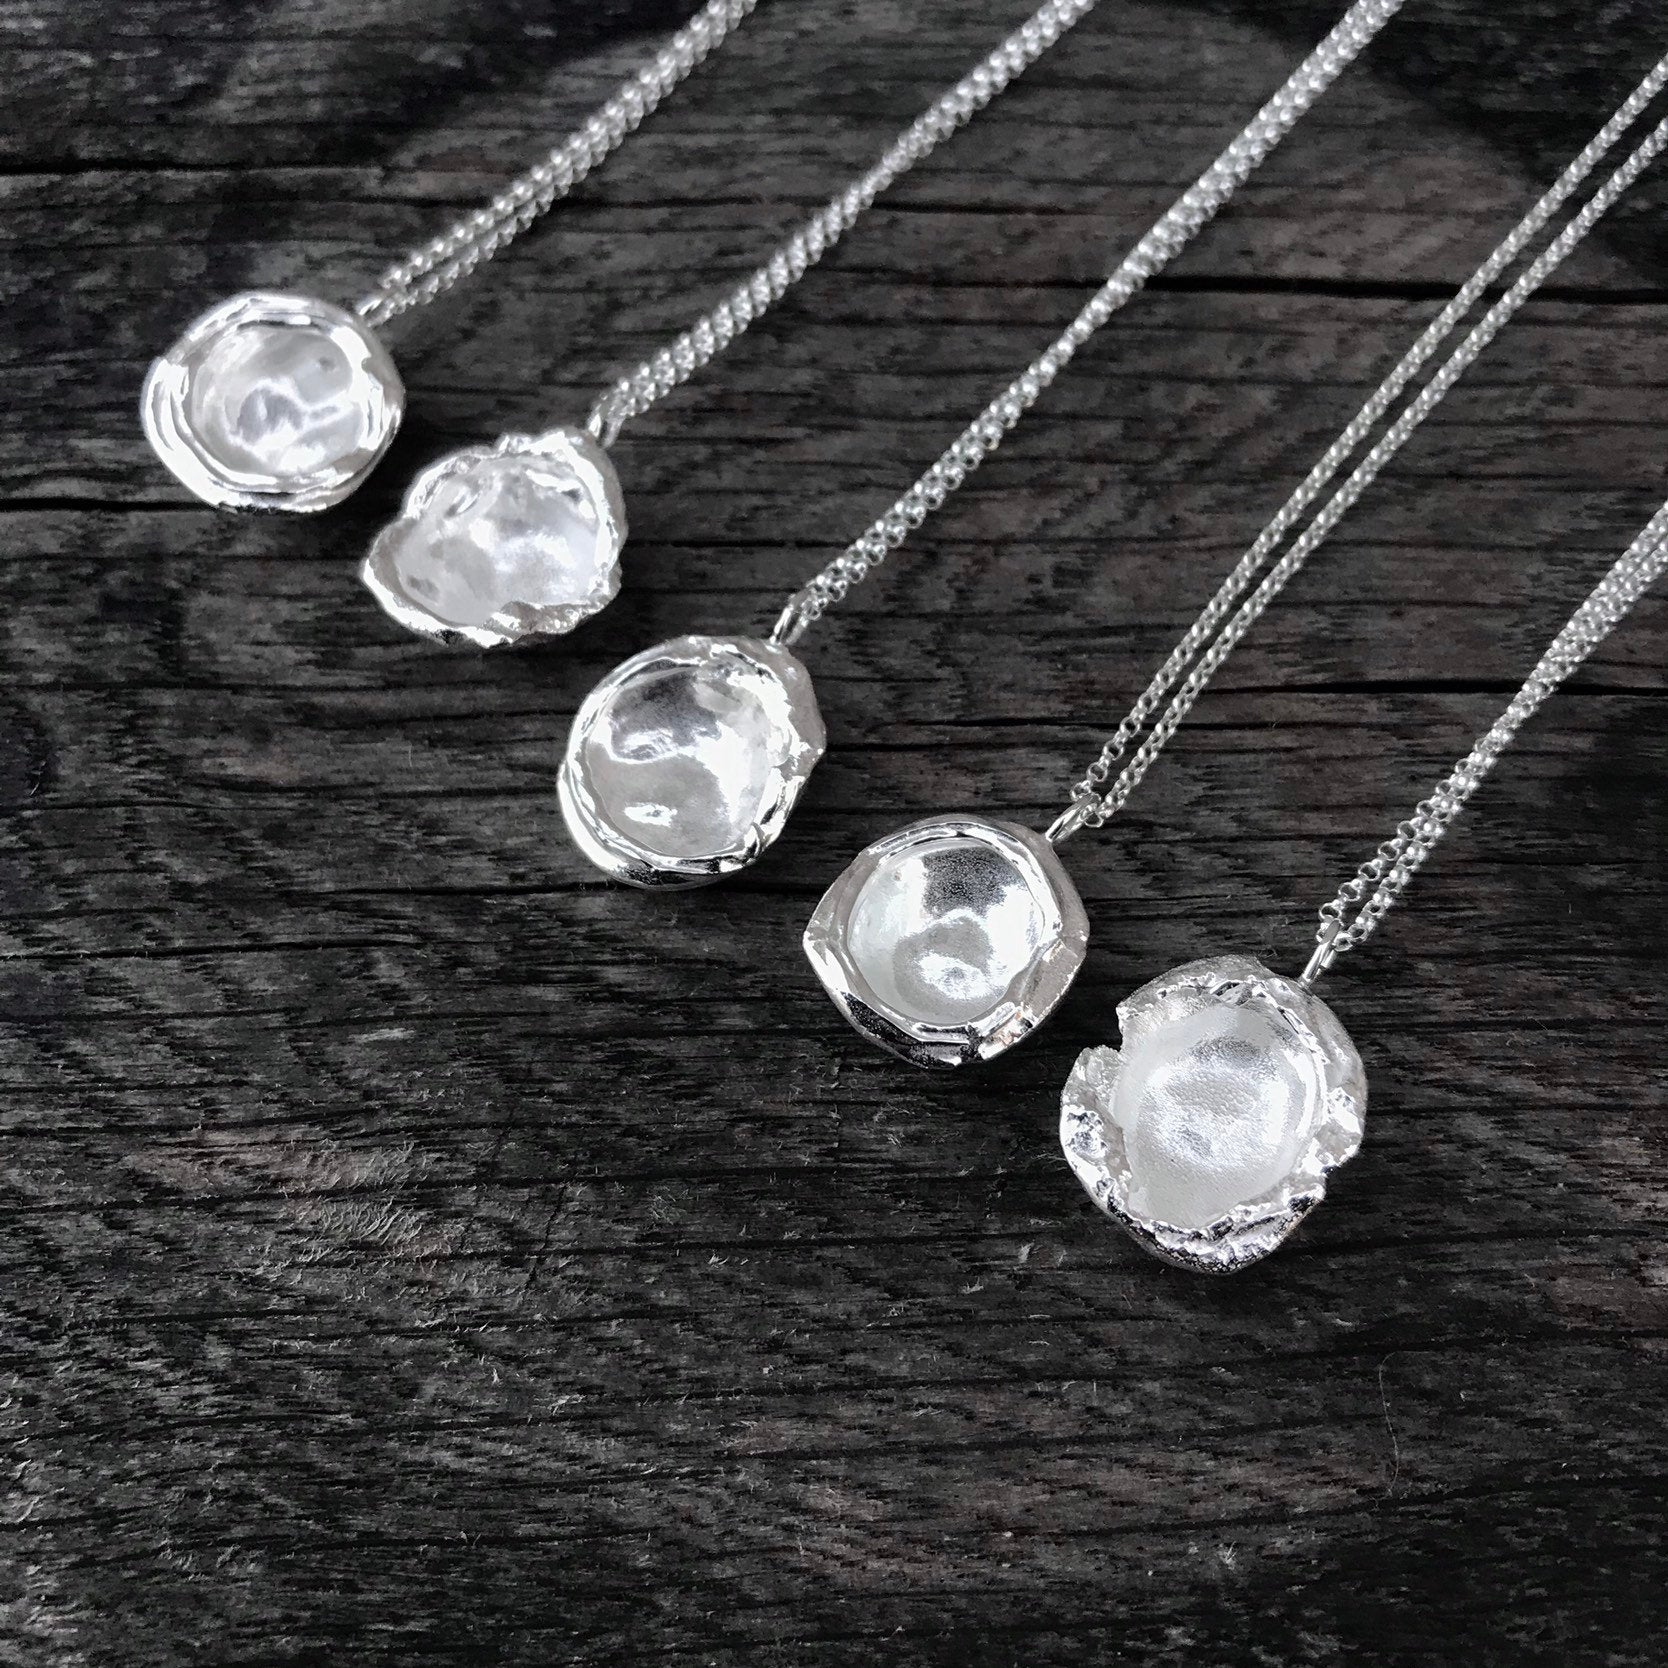 Silver Droplet Necklace, Sterling Silver Pendant Necklace, Recycled Silver, Organic Water Droplet Necklace, Teardrop Contemporary Necklace Pertaining To Recent August Droplet Pendant Necklaces (View 11 of 25)